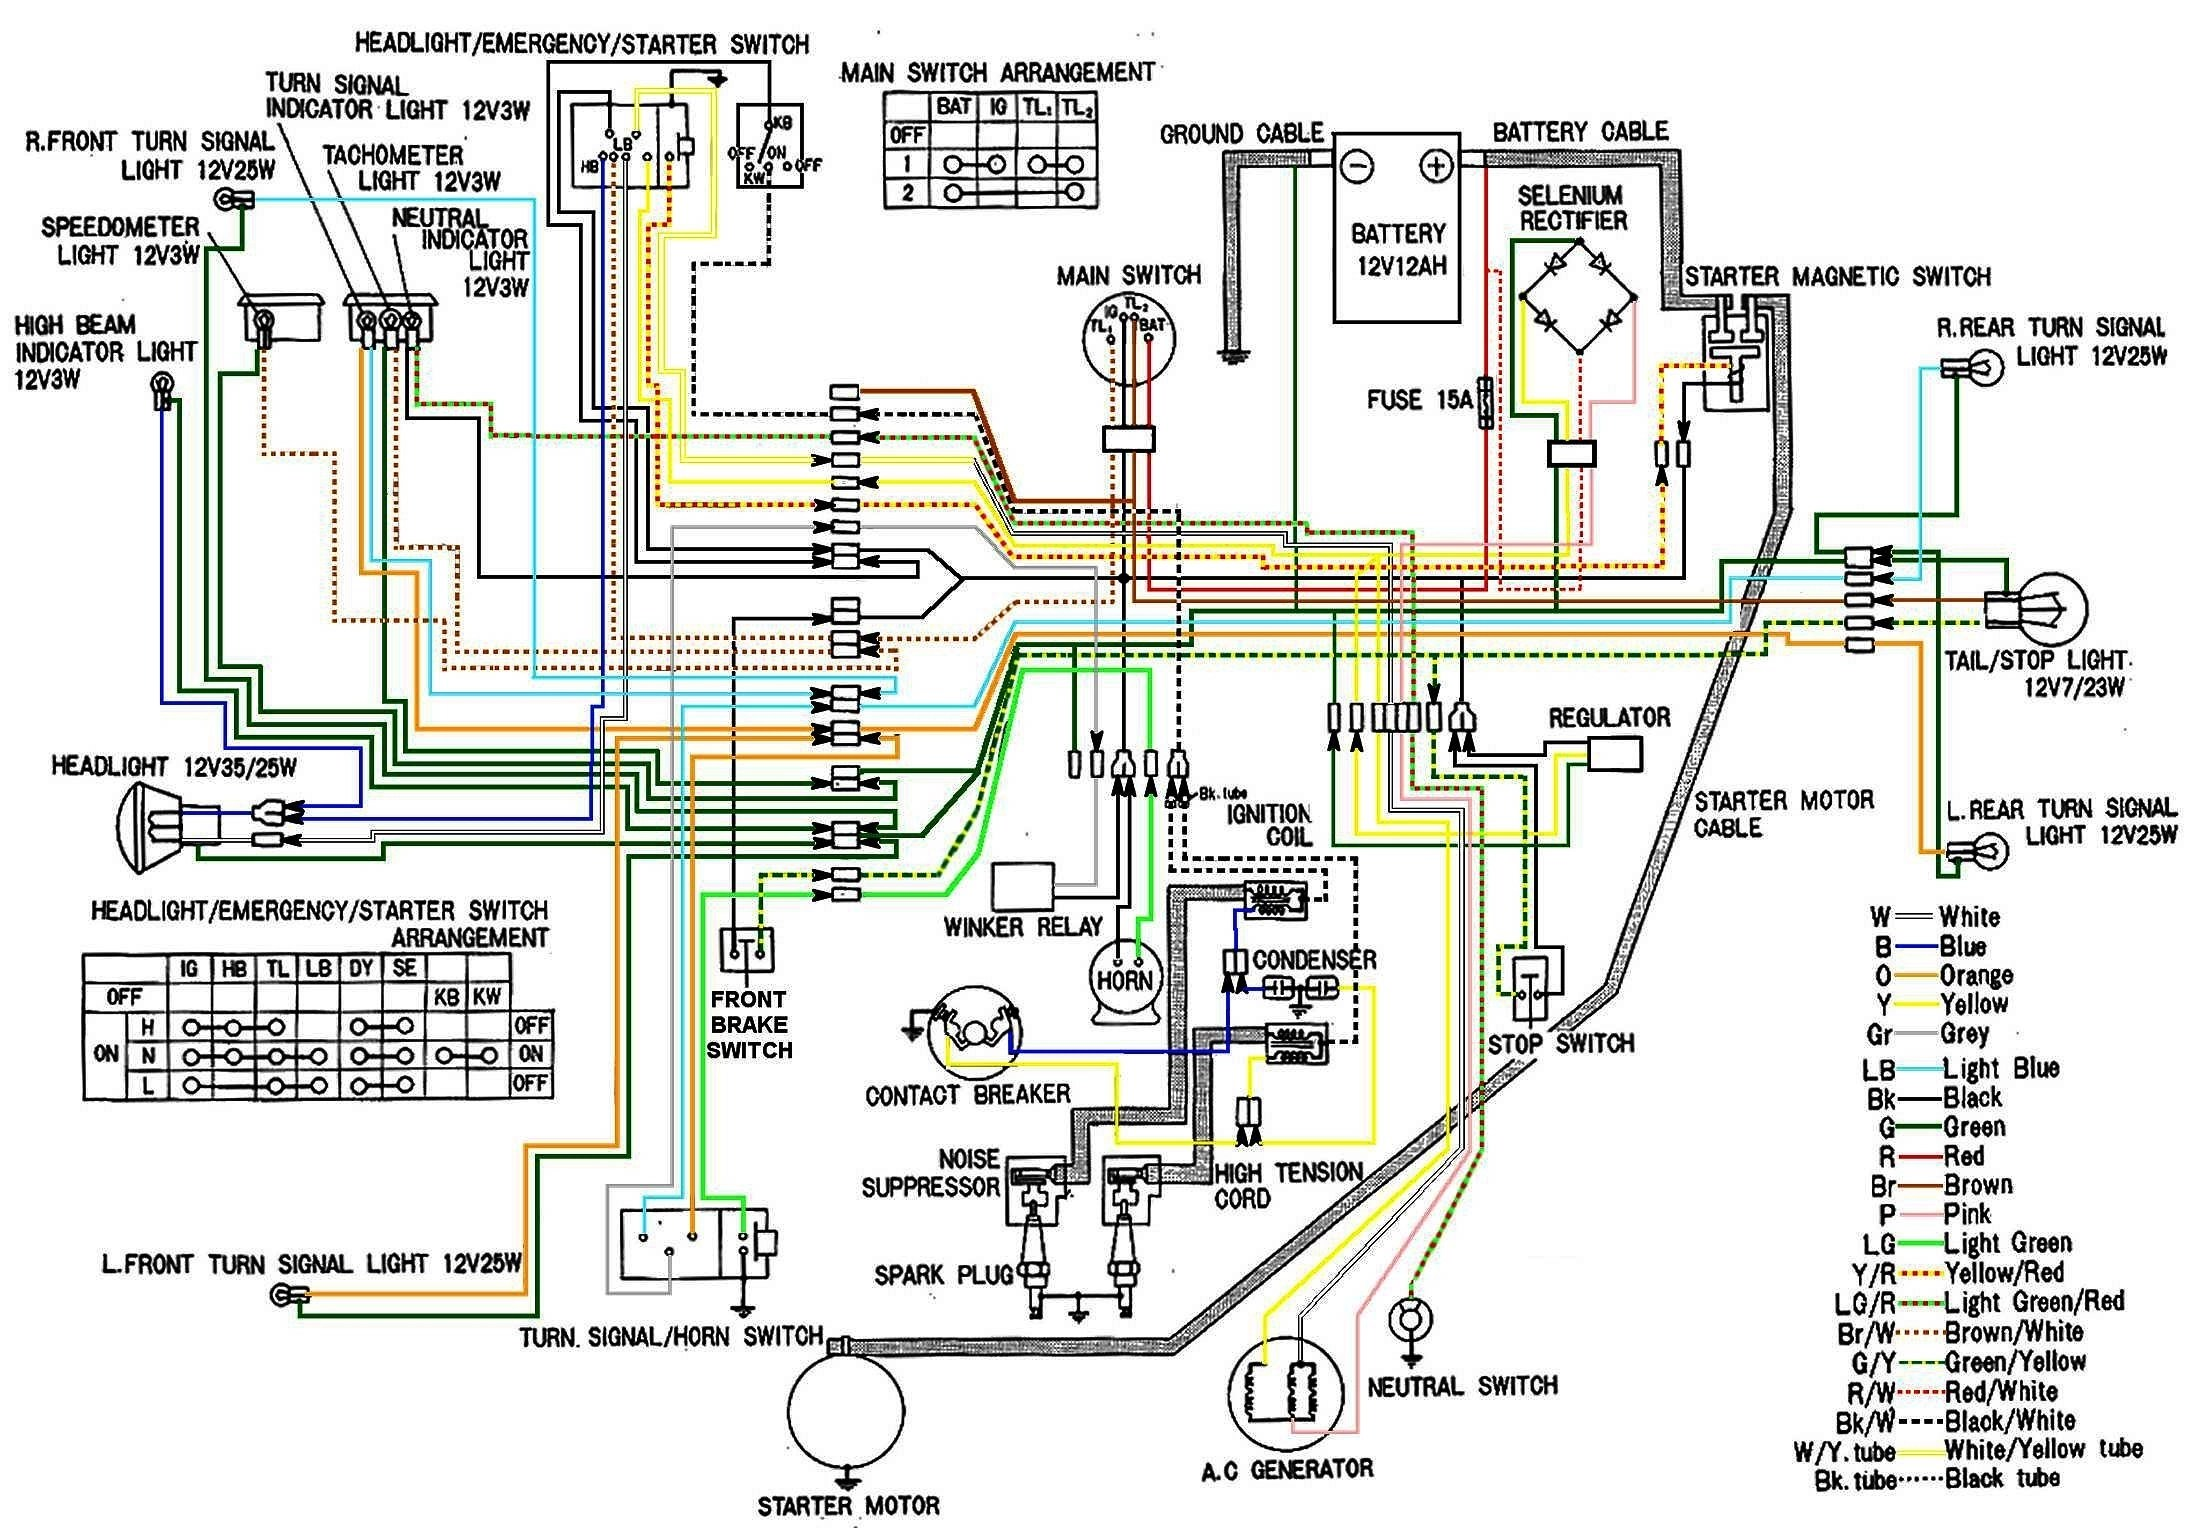 honda ss50 wiring diagram direct online starter cb450 color now corrected